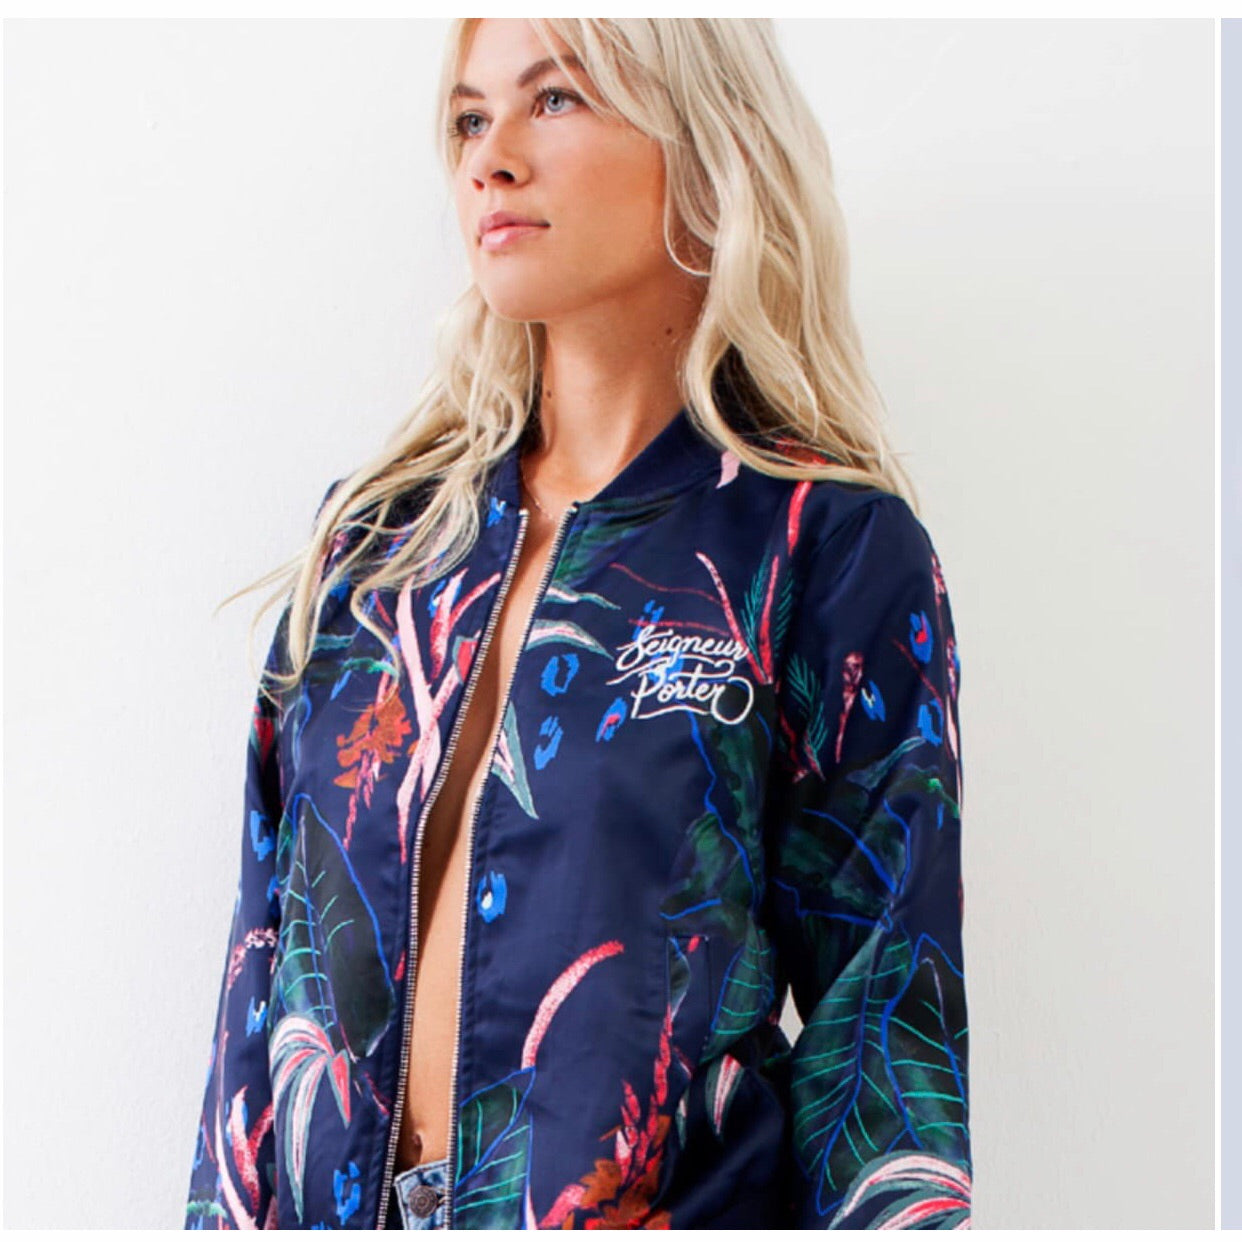 SEIGNEUR PORTER | Bundy Dark Tropics Allover Print Bomber Jacket